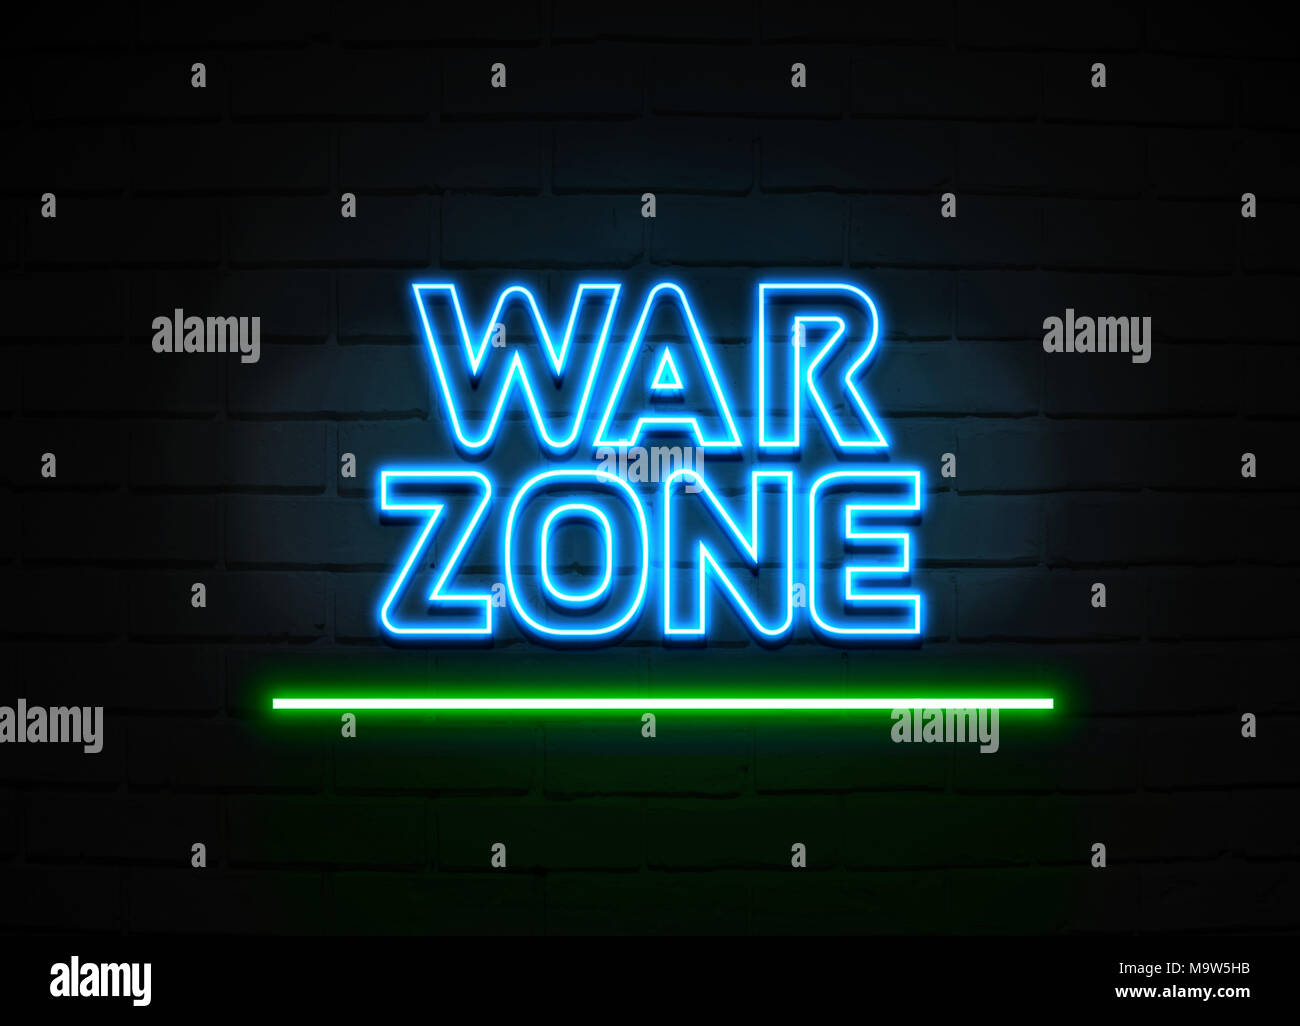 War Zone neon sign - Glowing Neon Sign on brickwall wall - 3D rendered royalty free stock illustration. - Stock Image